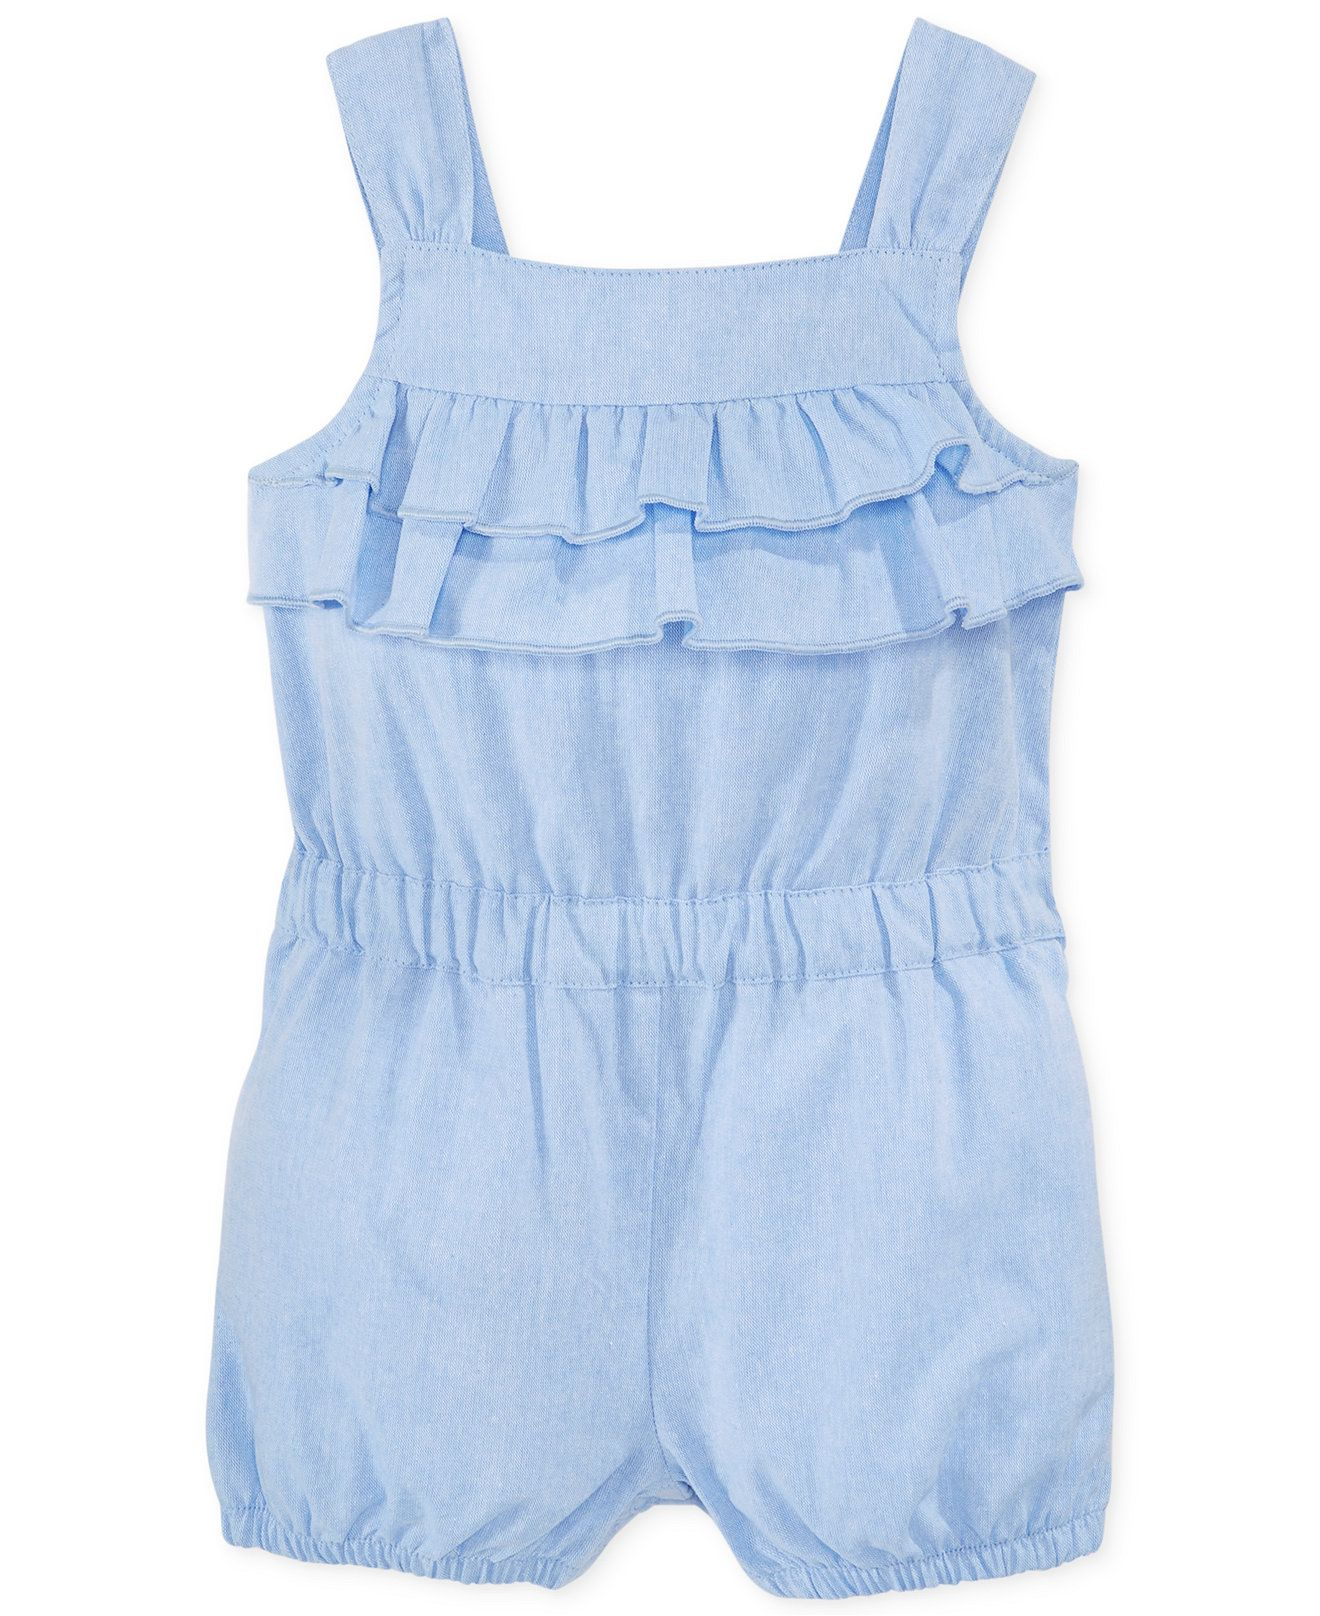 017004d7698f First Impressions Baby Girls  Chambray Ruffle Romper - Kids Baby Girl (0-24  months) - Macy s